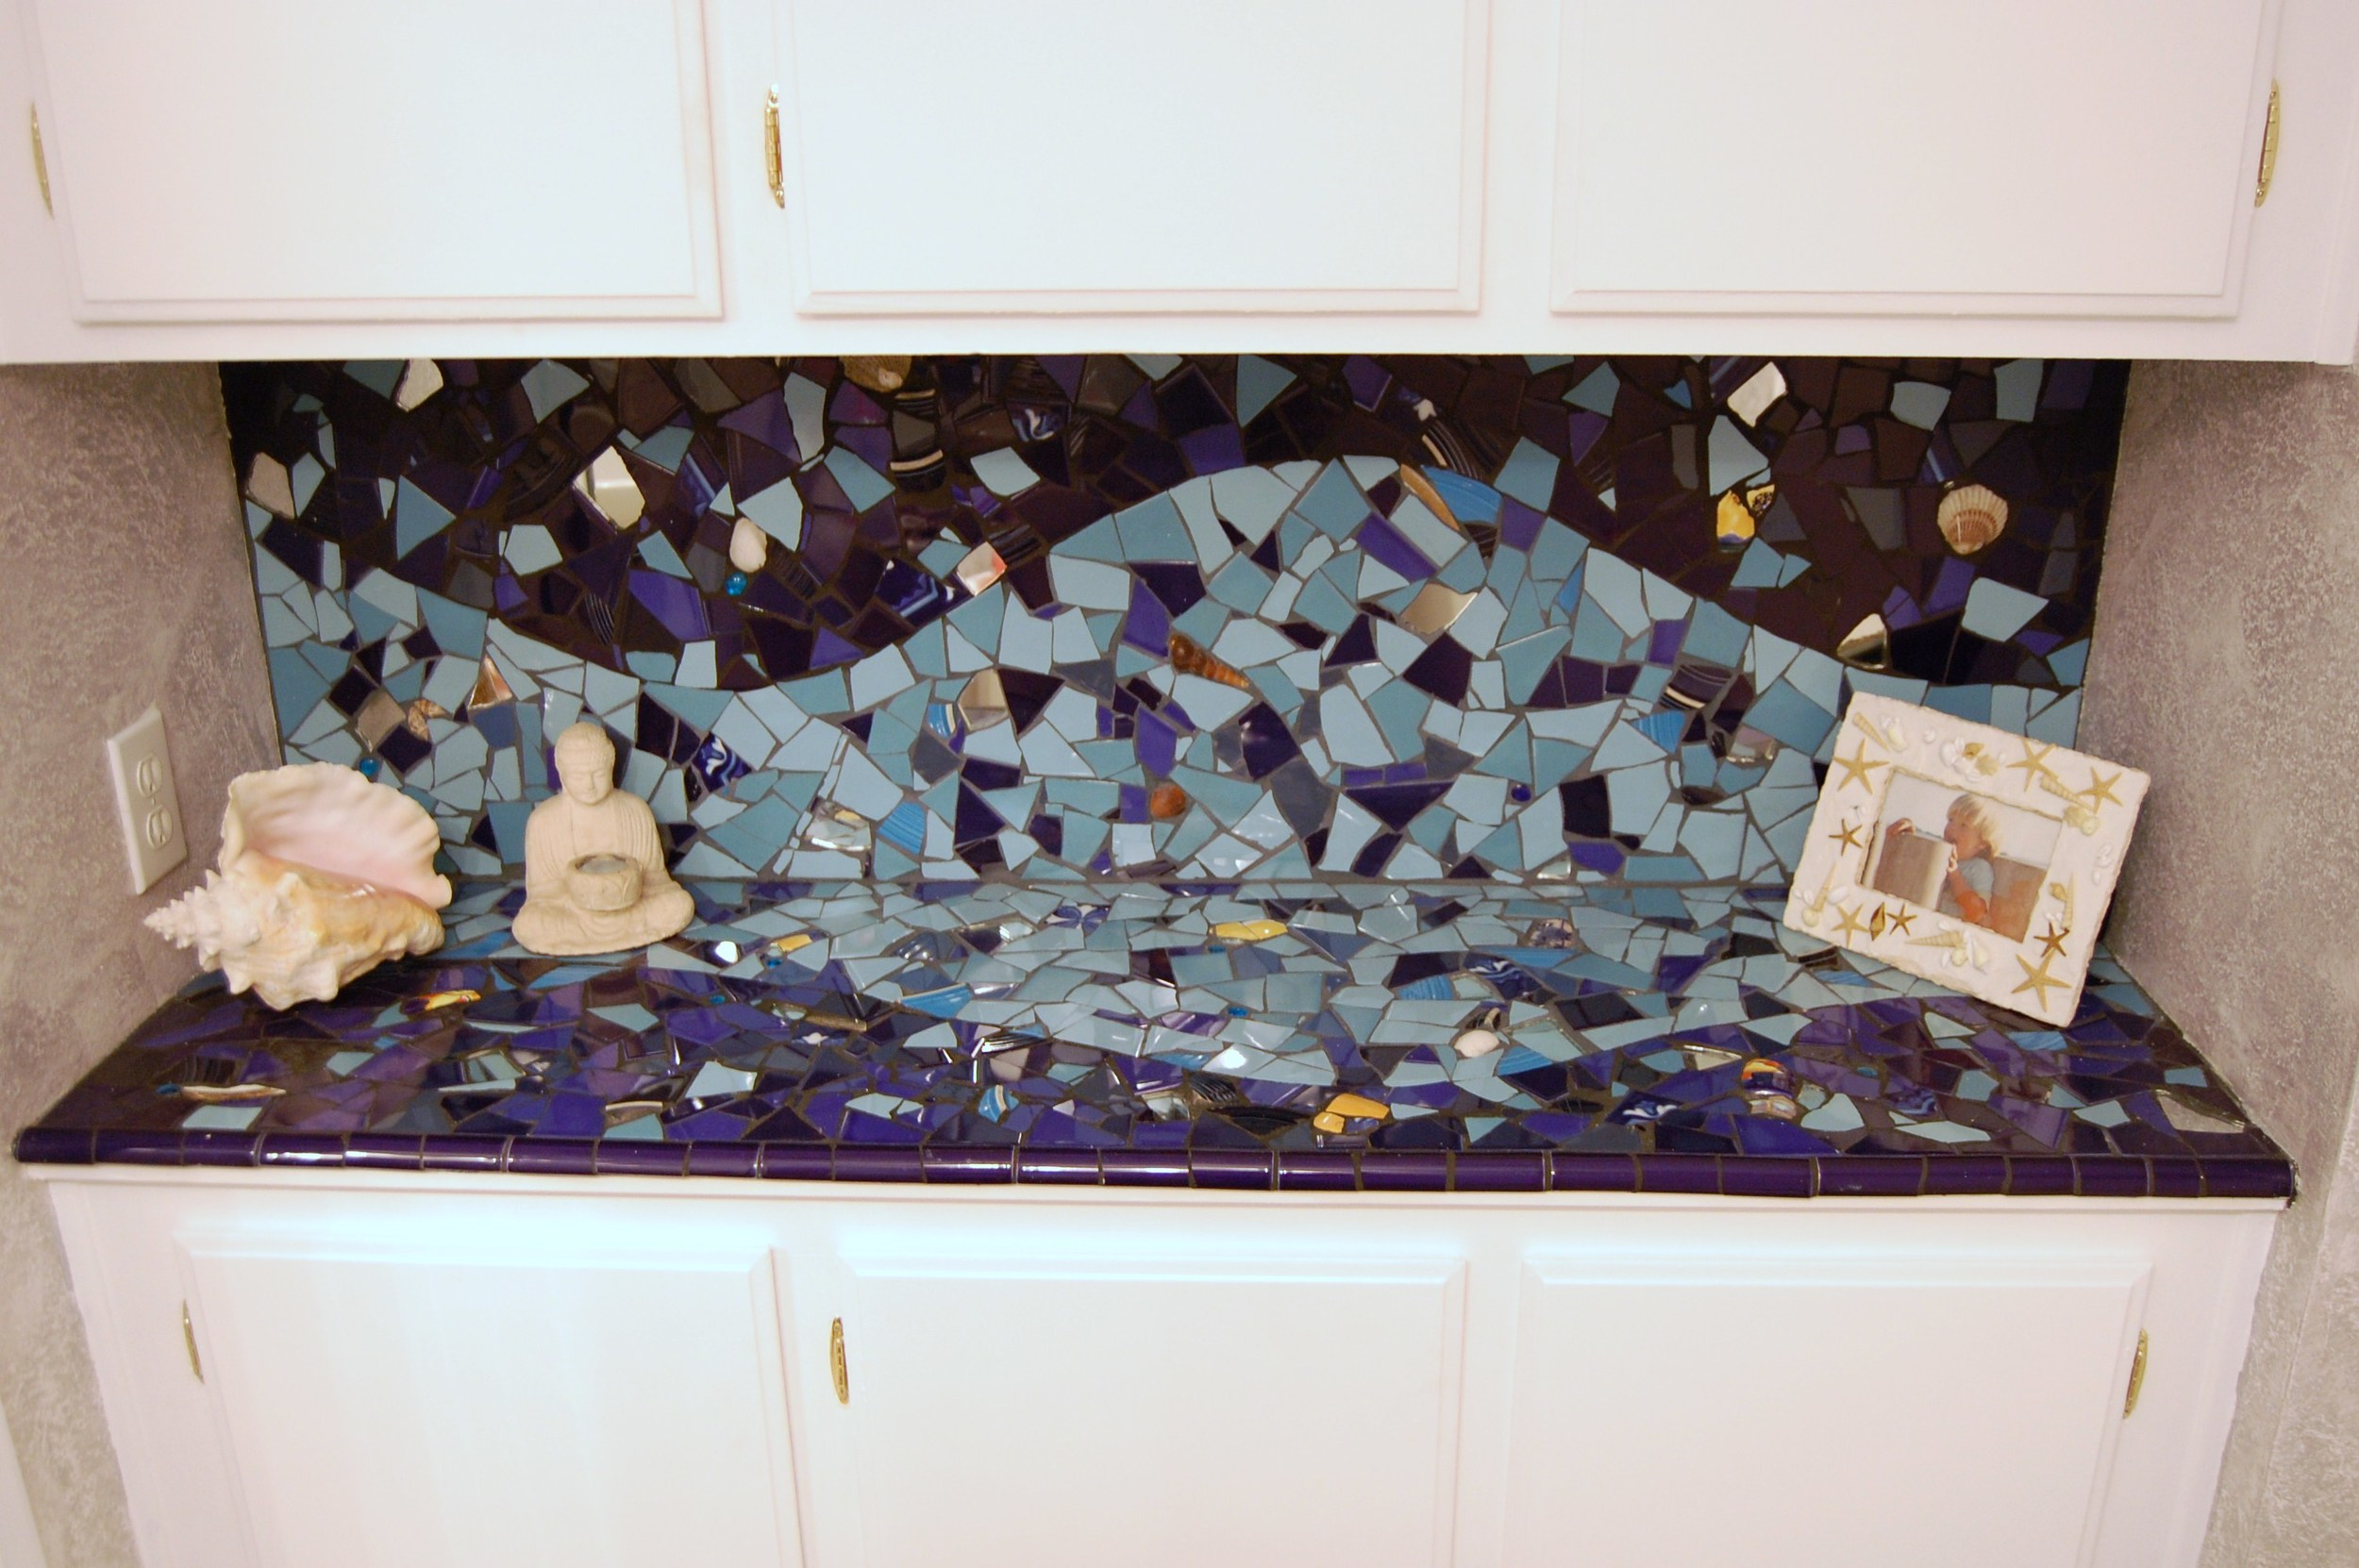 Residential bathroom.     Ceramic tile, mirror, shells and found objects.  Westlake Village, CA.  2008